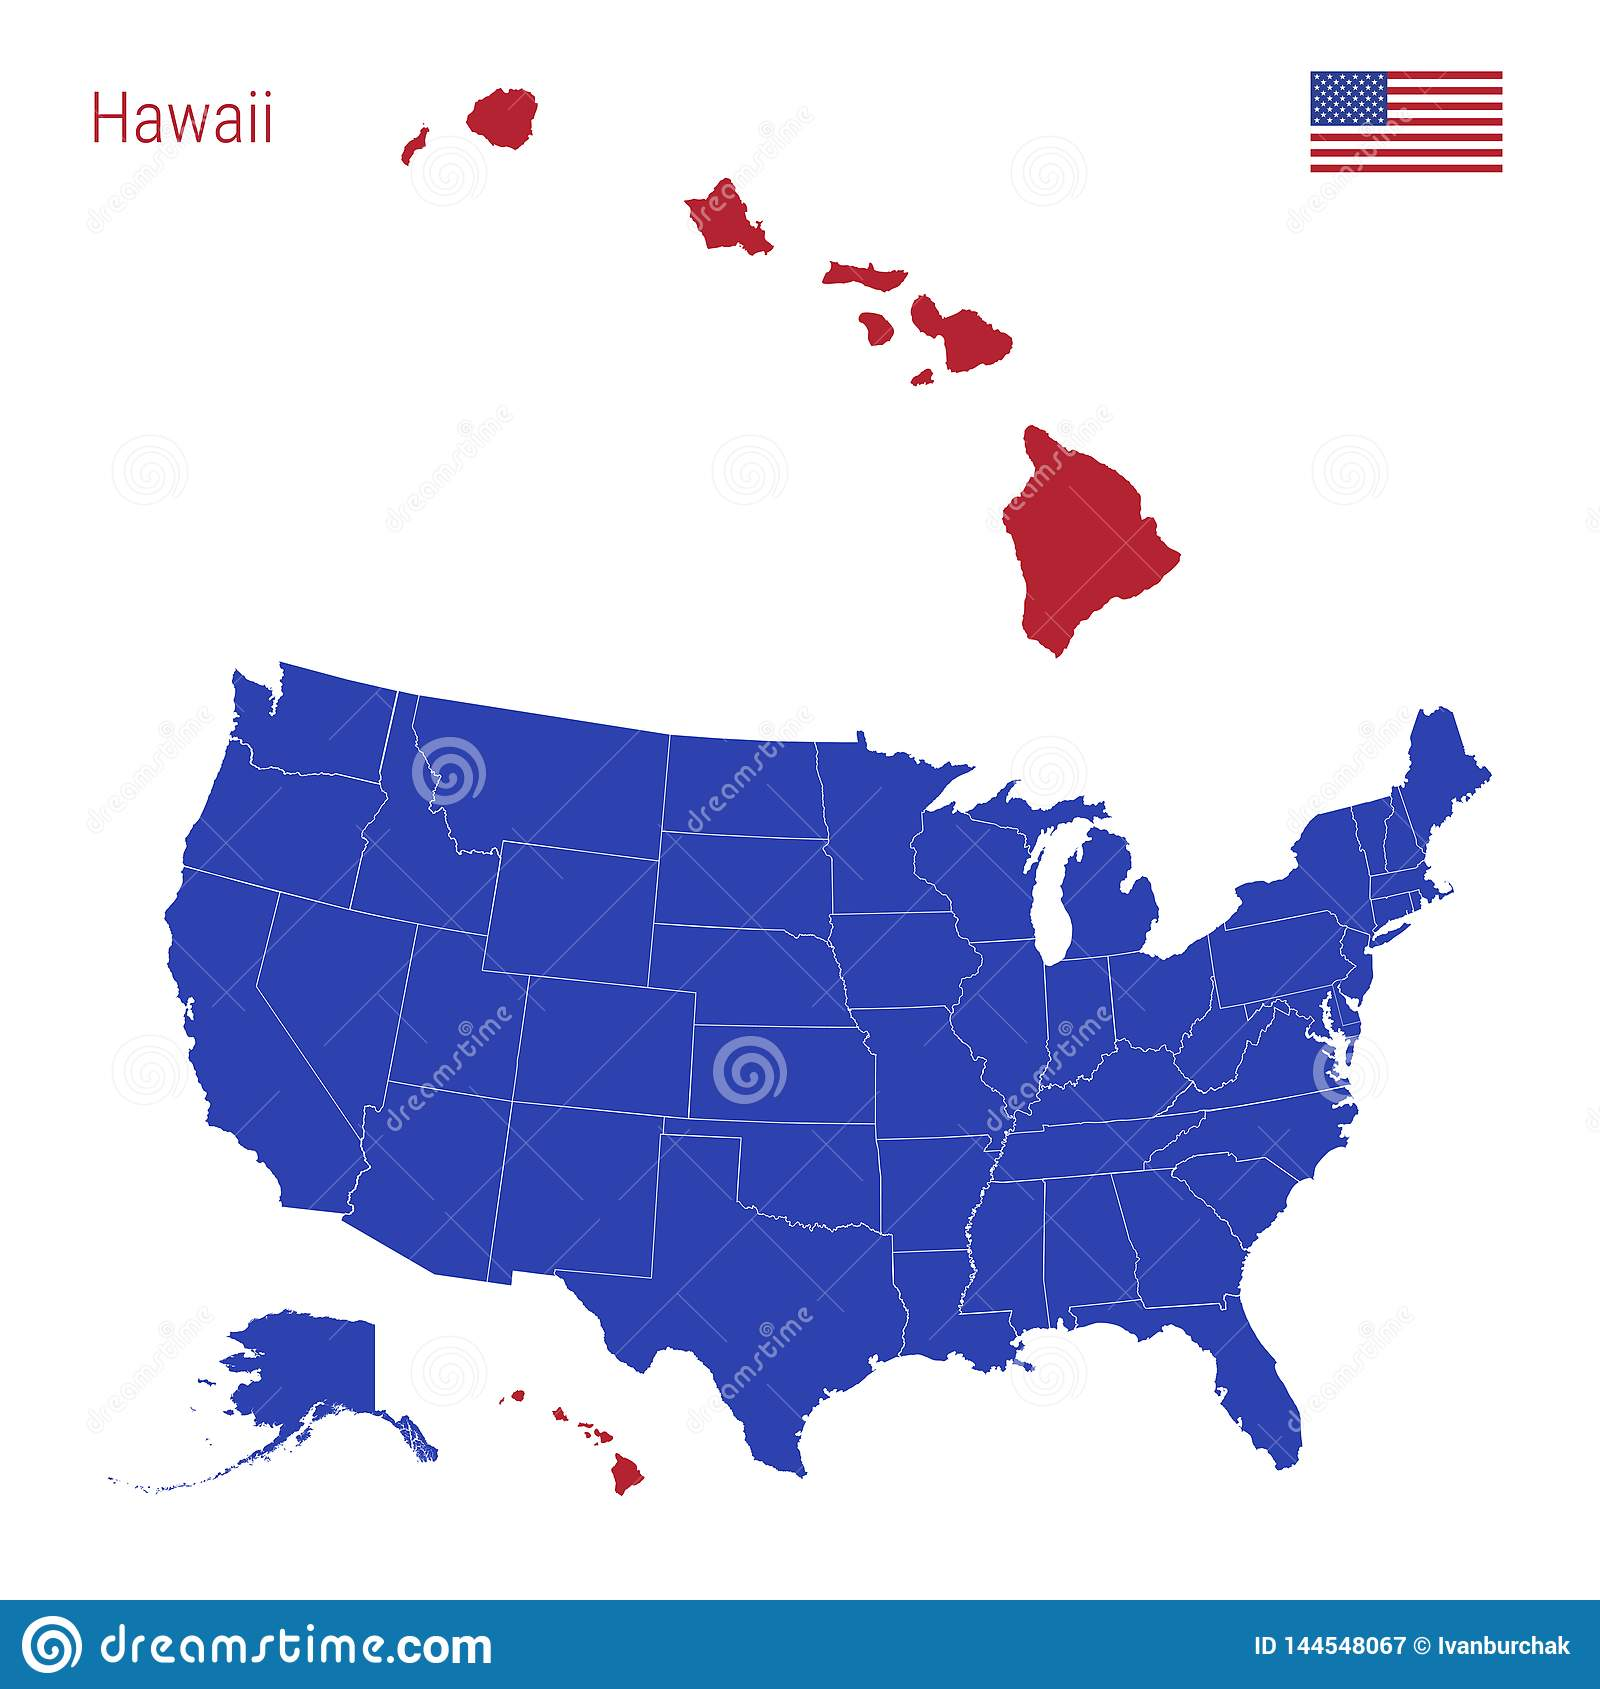 The State Of Hawaii Is Highlighted In Red. Vector Map Of The United ...